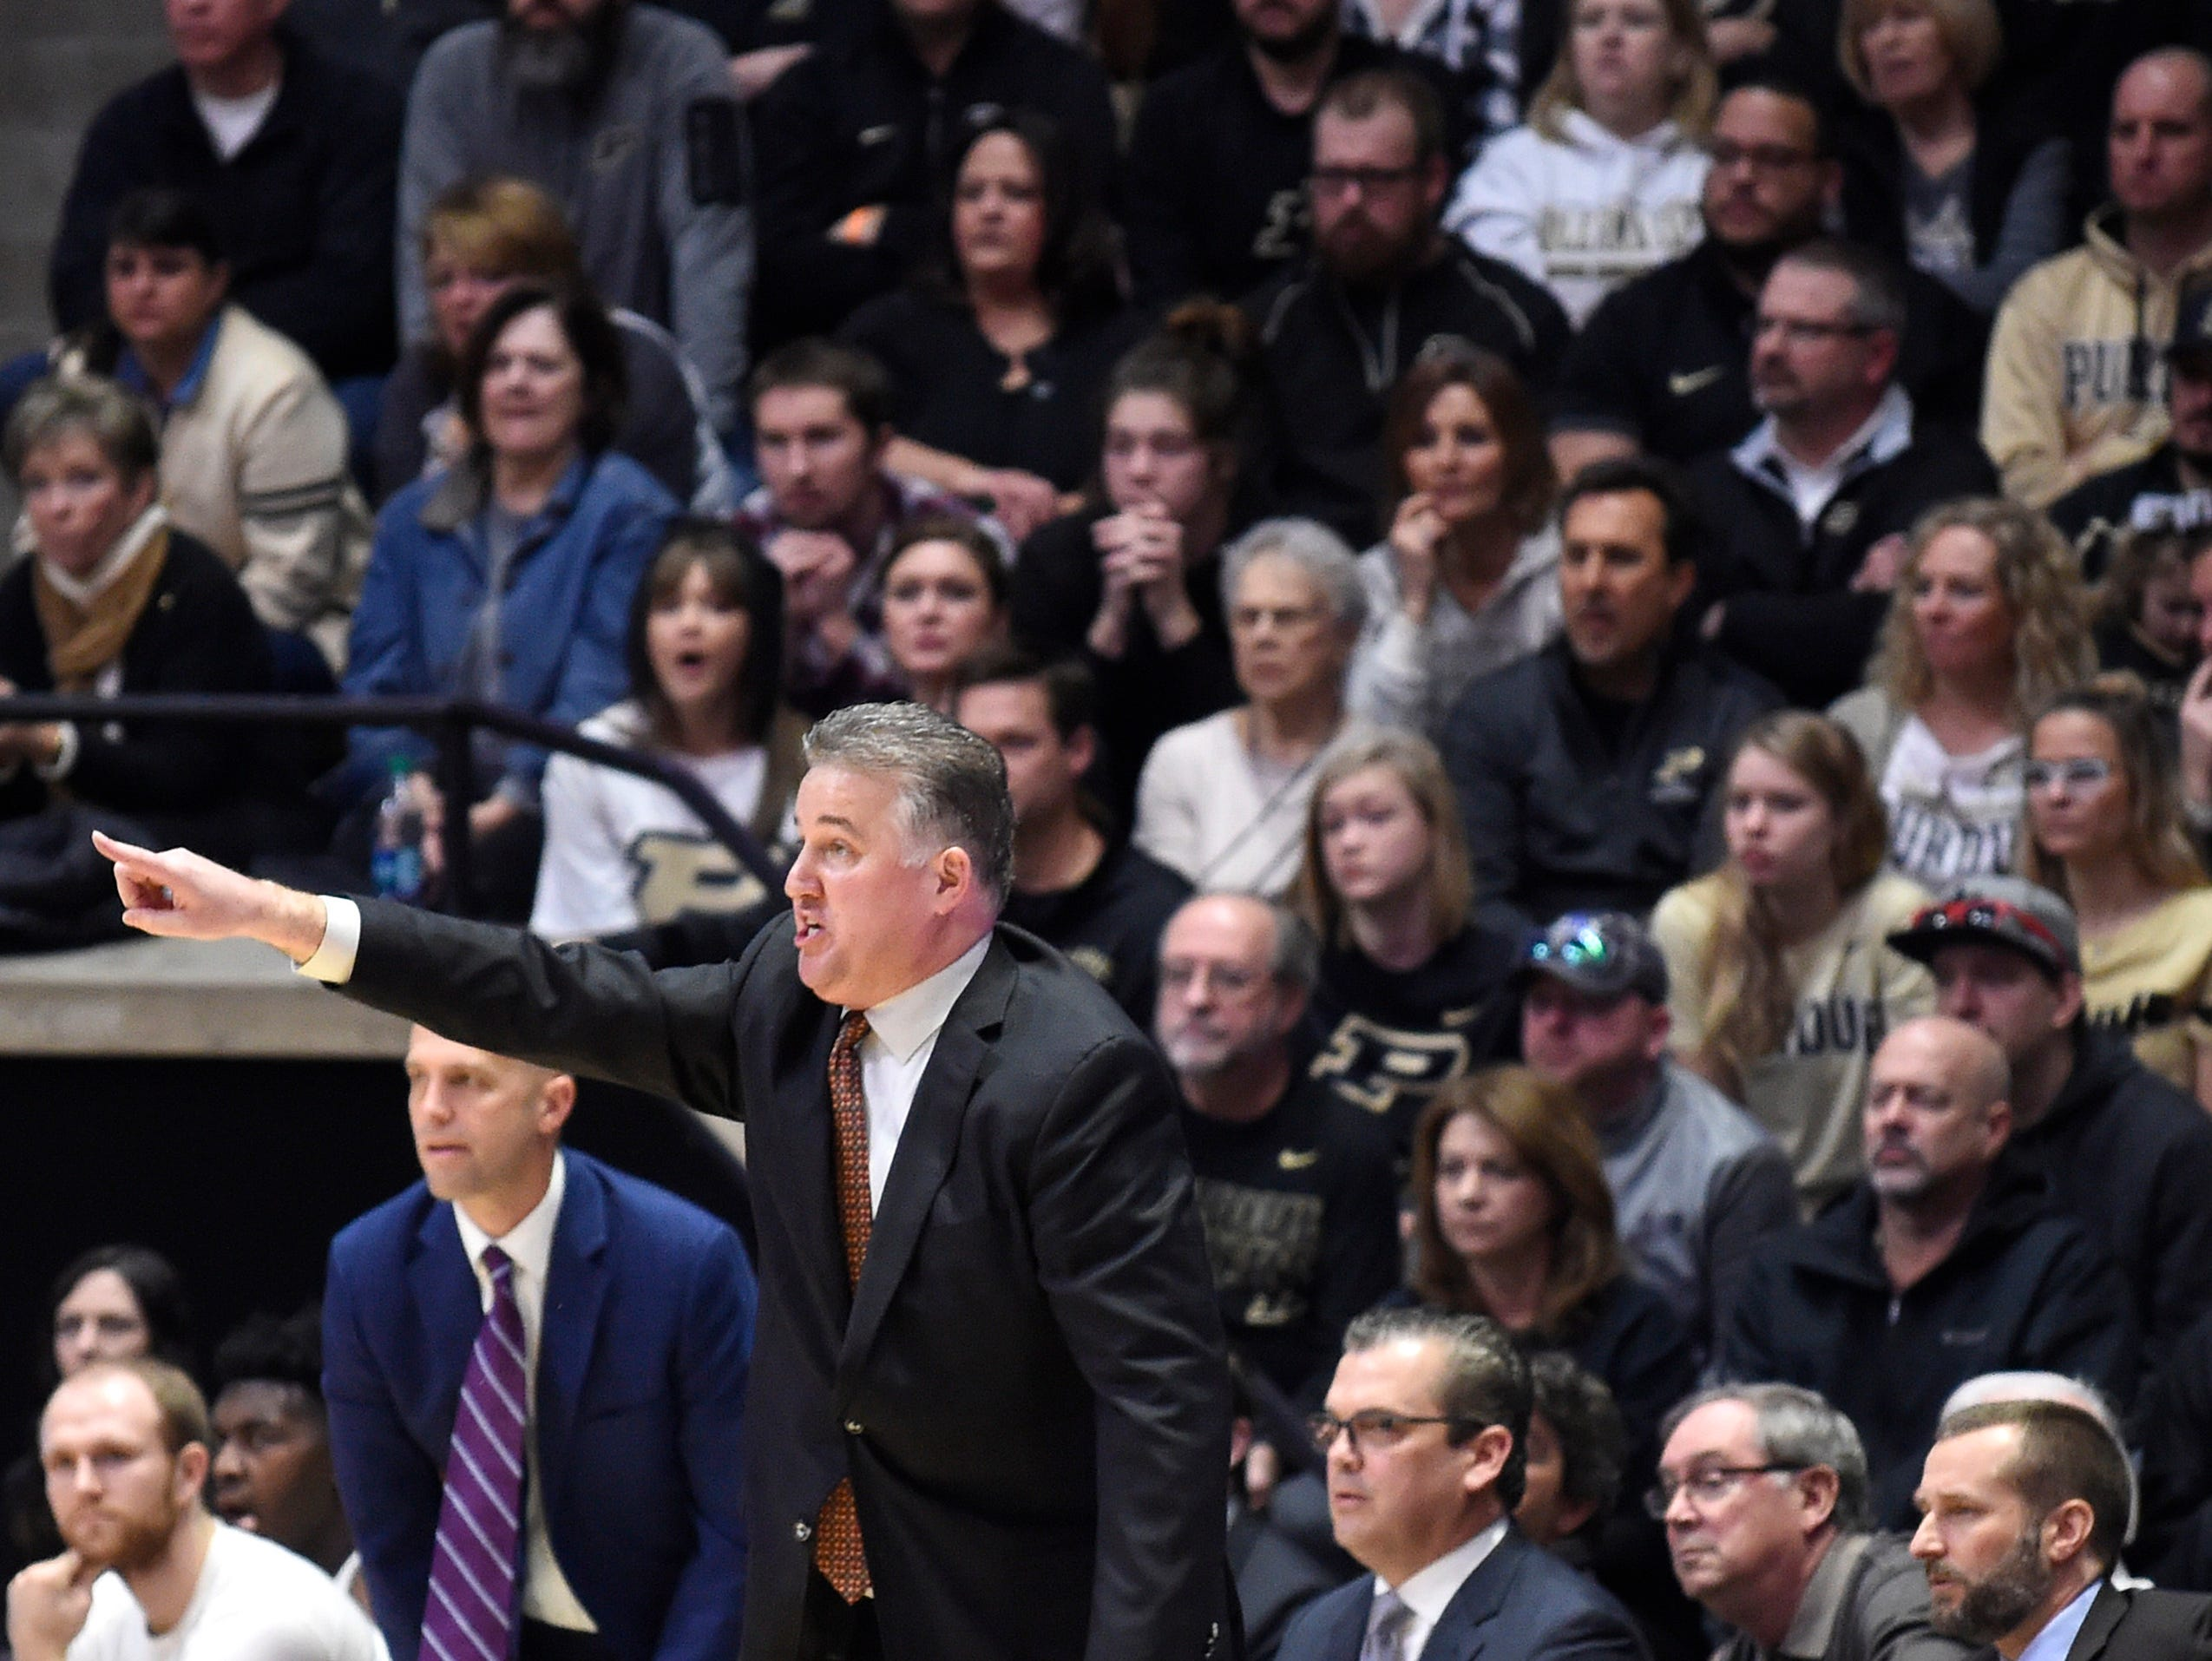 Feb 3, 2019; West Lafayette, IN, USA; Purdue Boilermakers head coach Matt Painter reacts in the first half at Mackey Arena. Mandatory Credit: Sandra Dukes-USA TODAY Sports